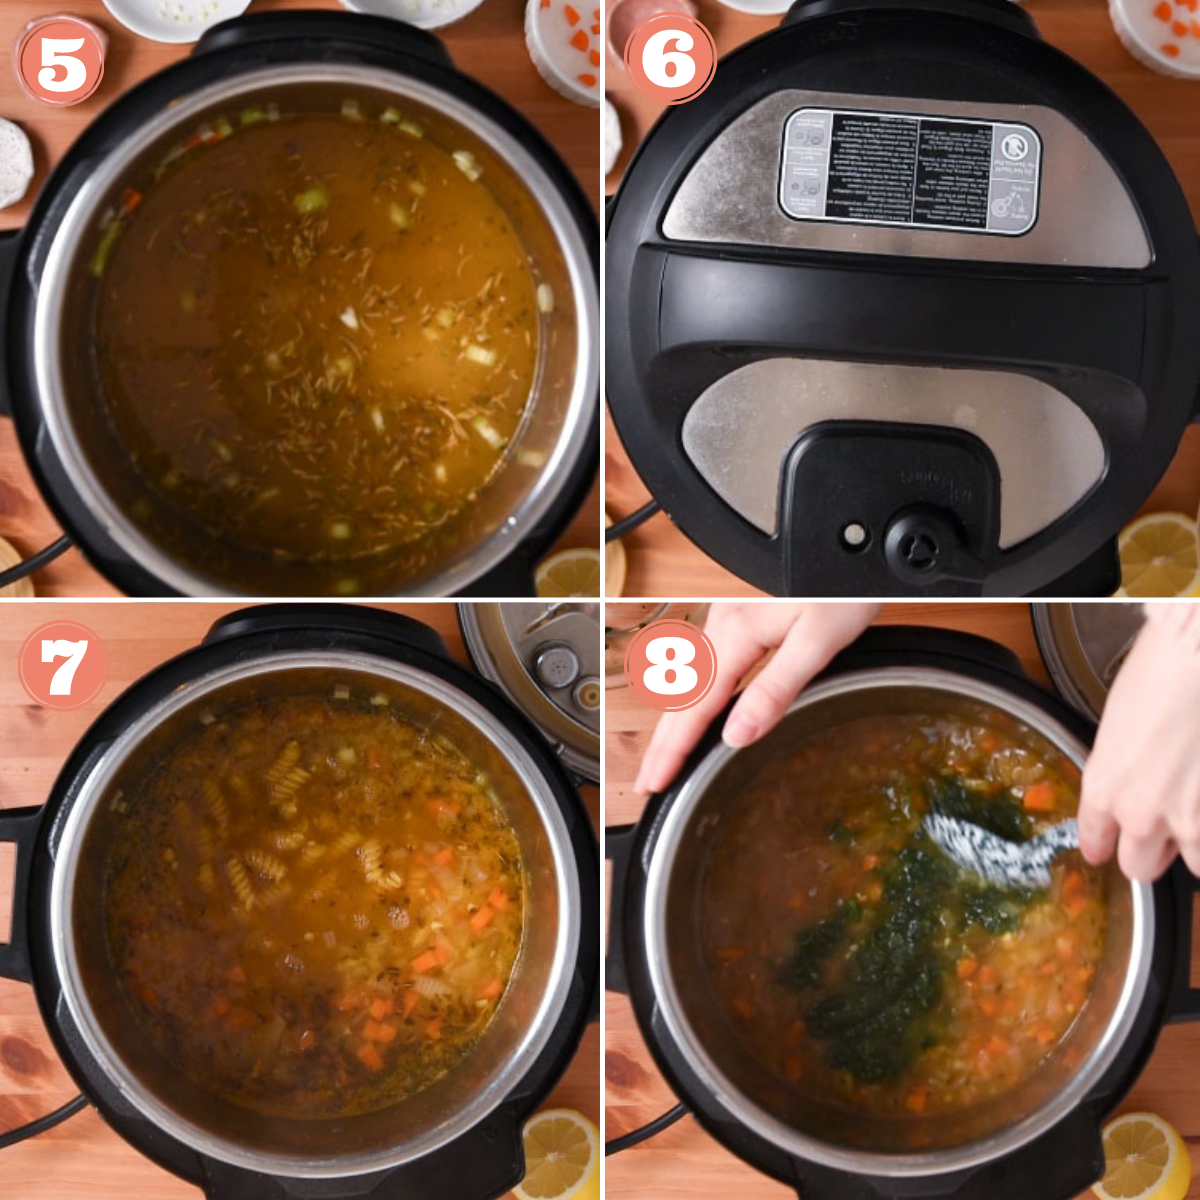 Steps 5 through 8 to make chickpea soup